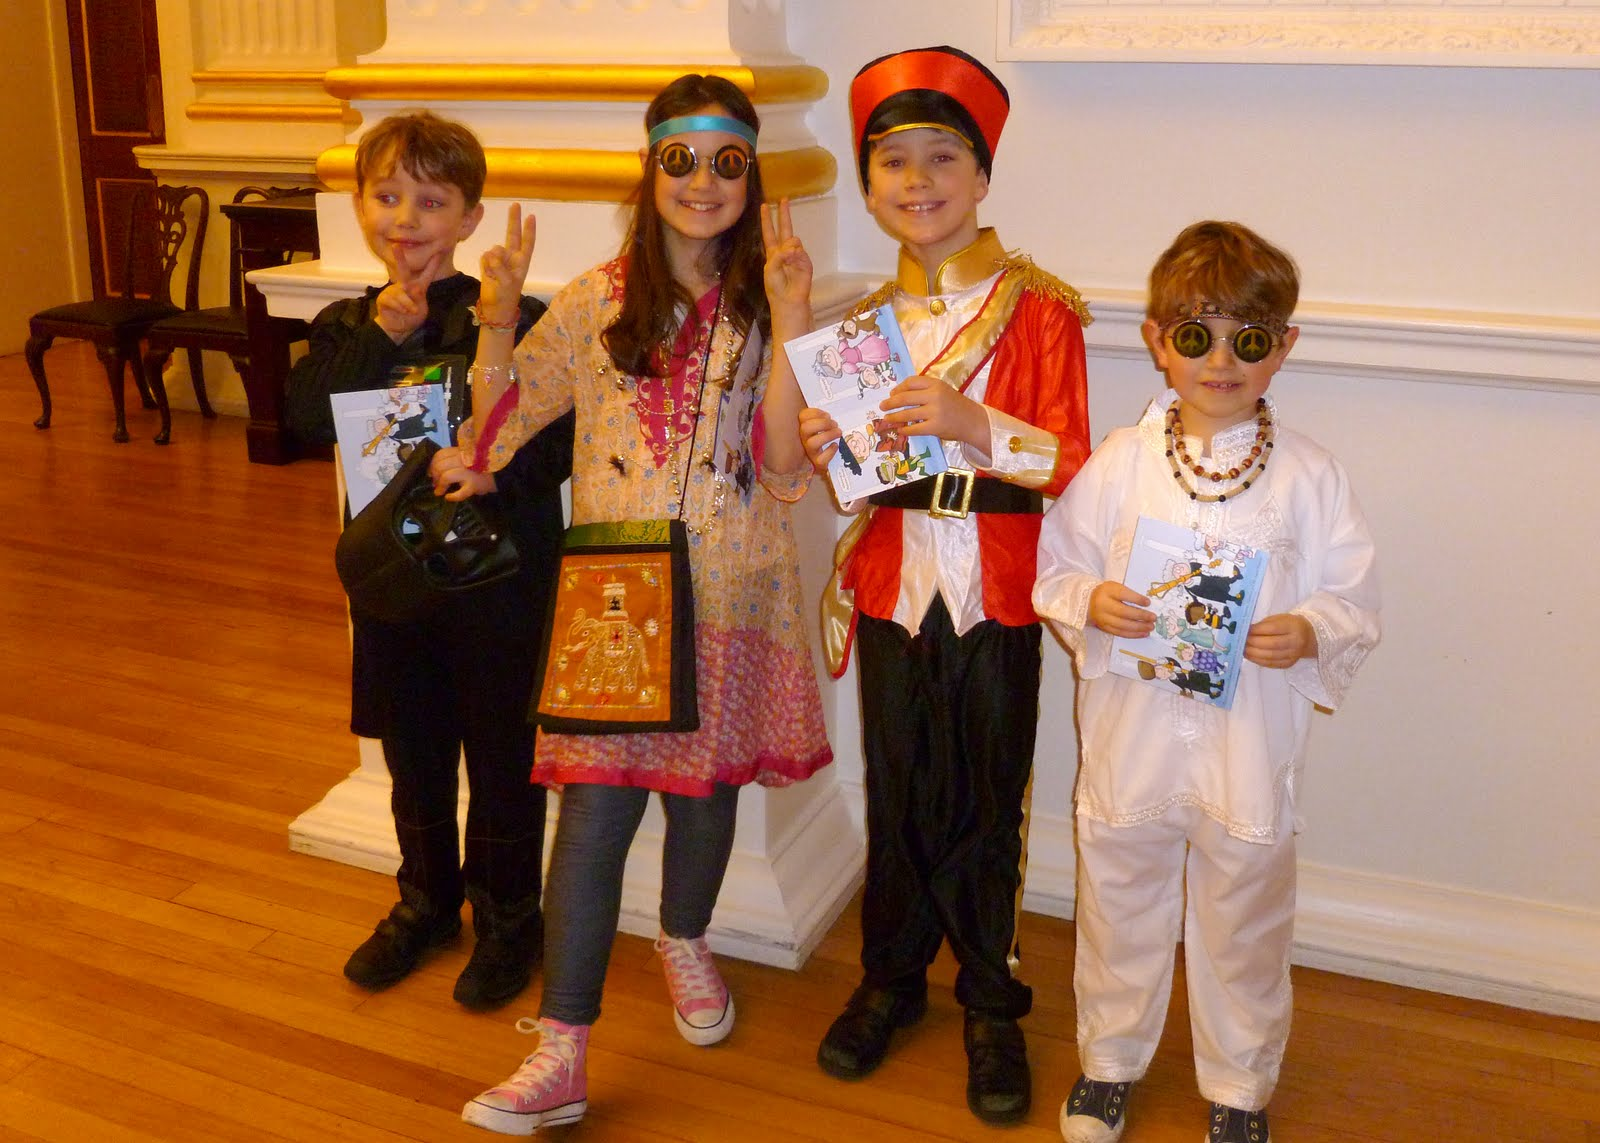 Pamela\'s Blog: Lord Mayor\'s Children\'s Fancy Dress Party at the ...